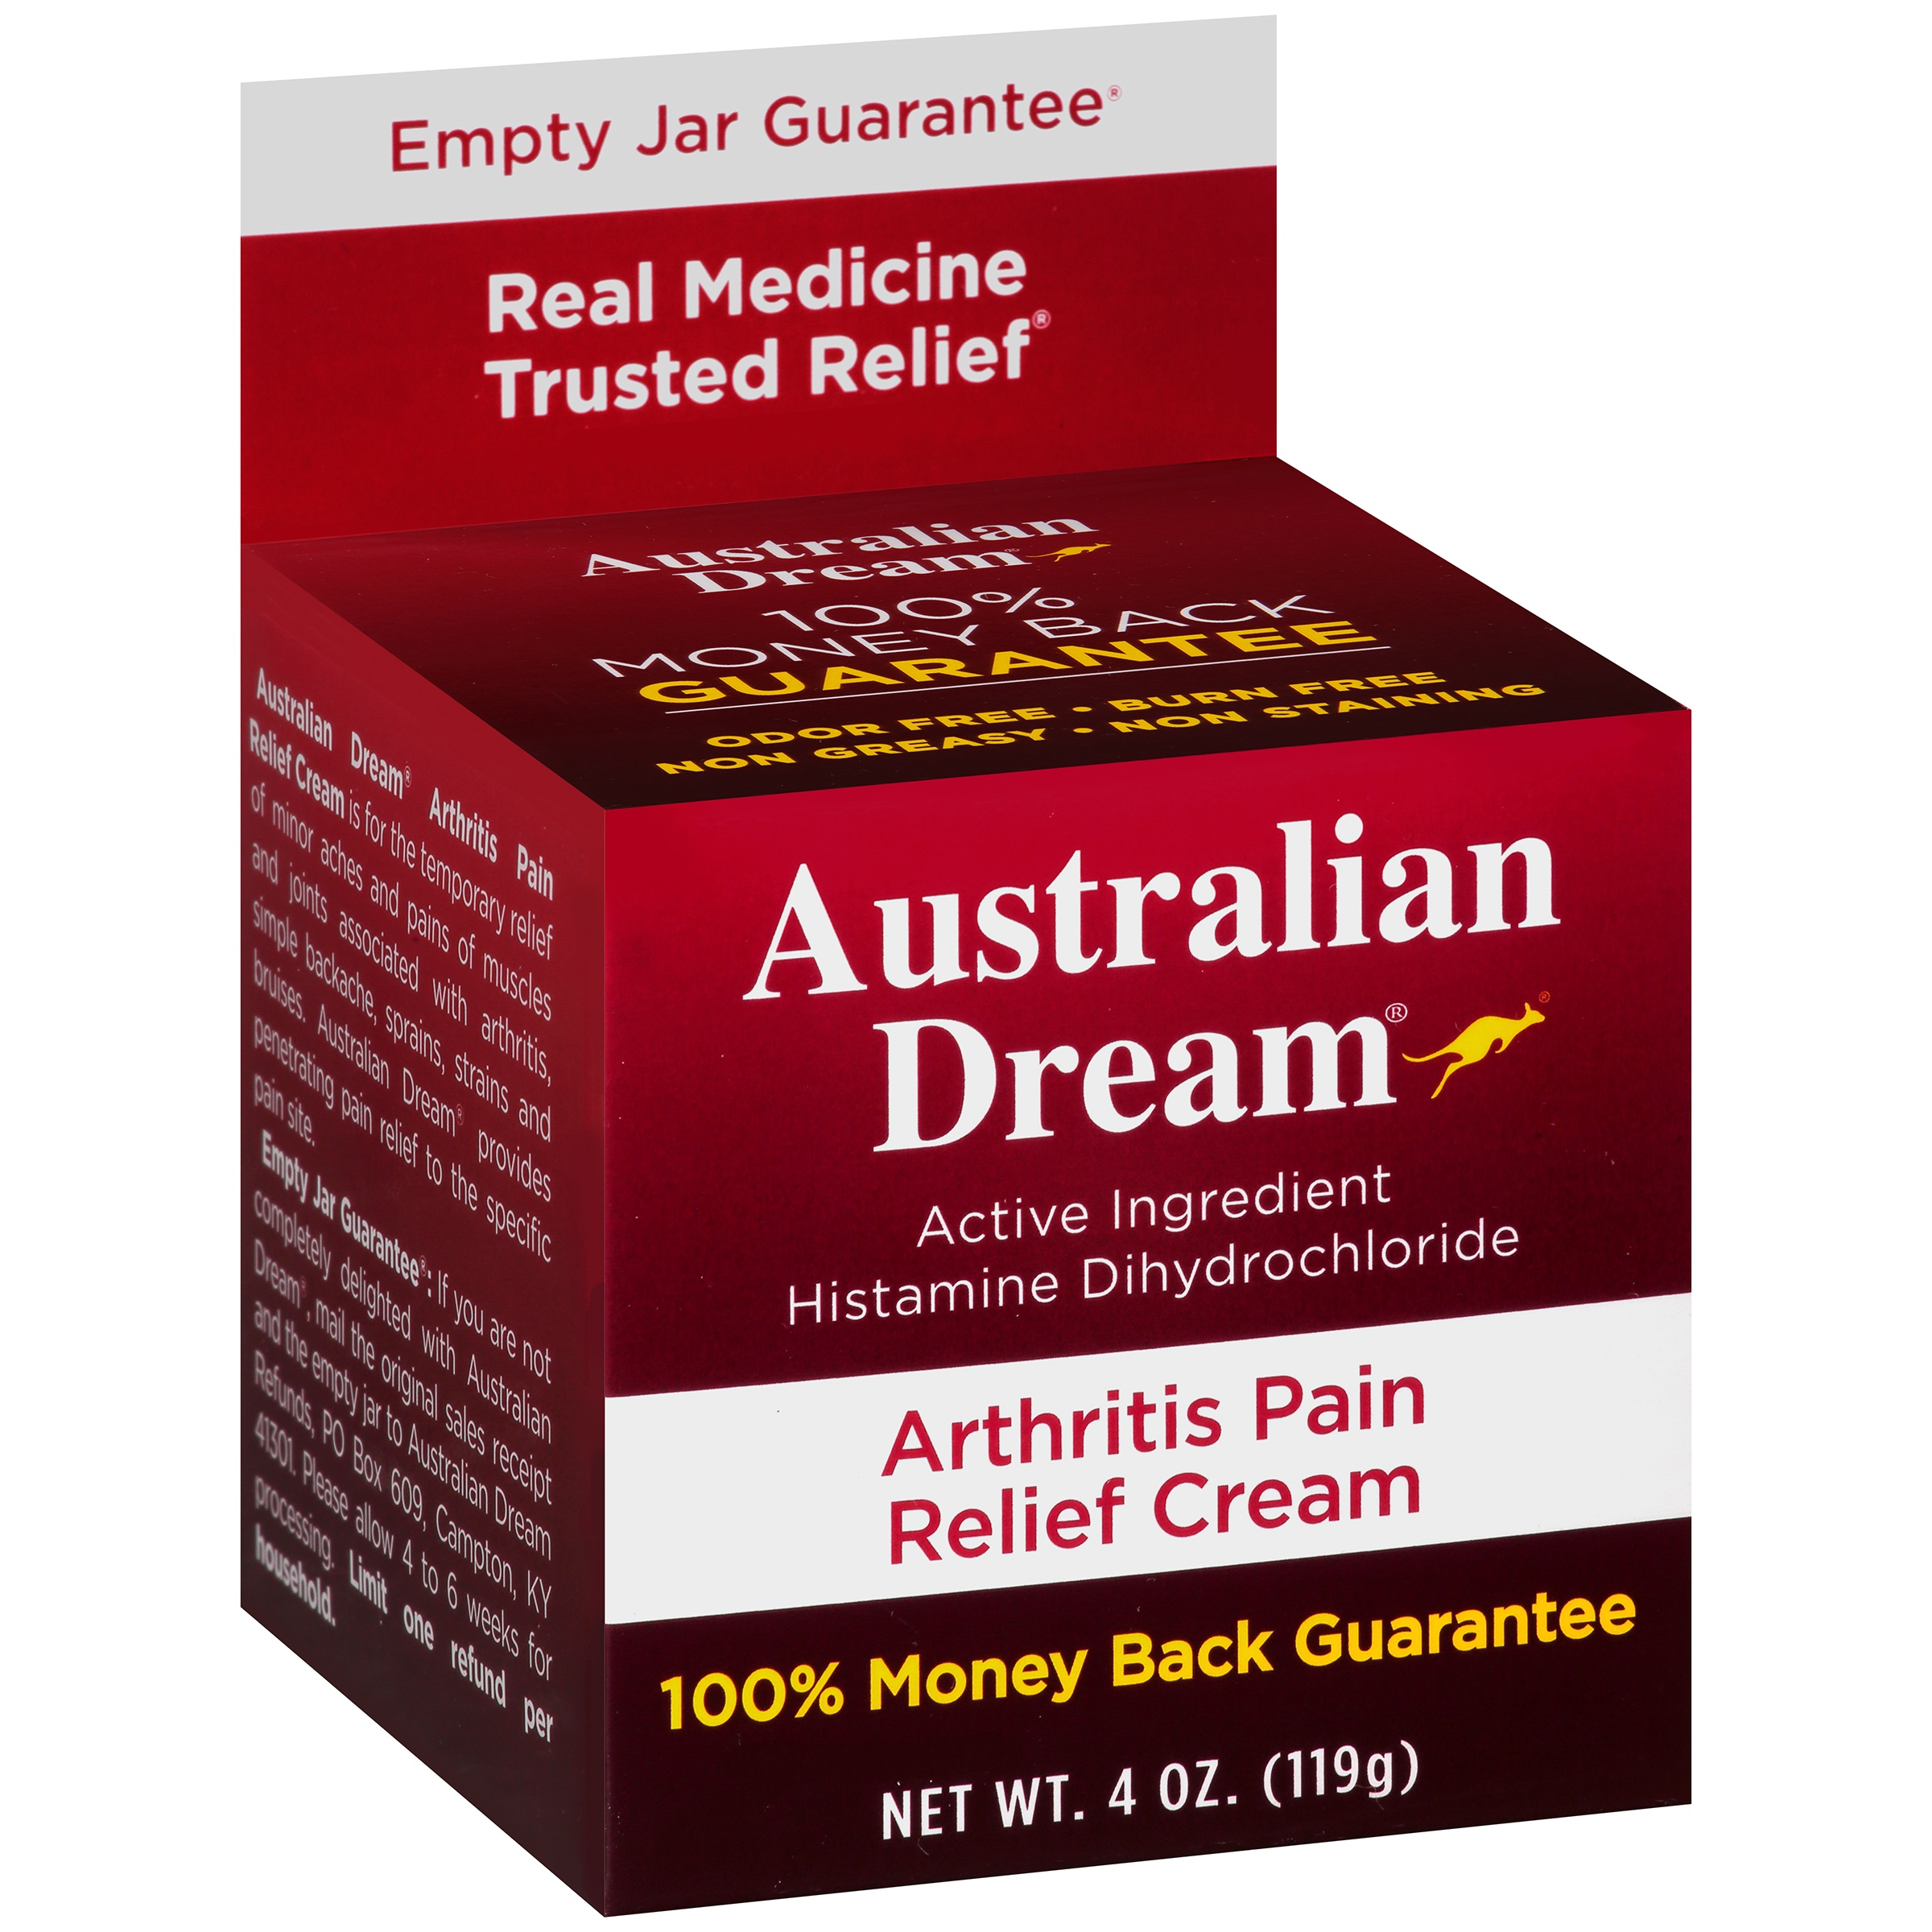 Australian Dream® Arthritis Pain Relief Cream 4 oz. Box